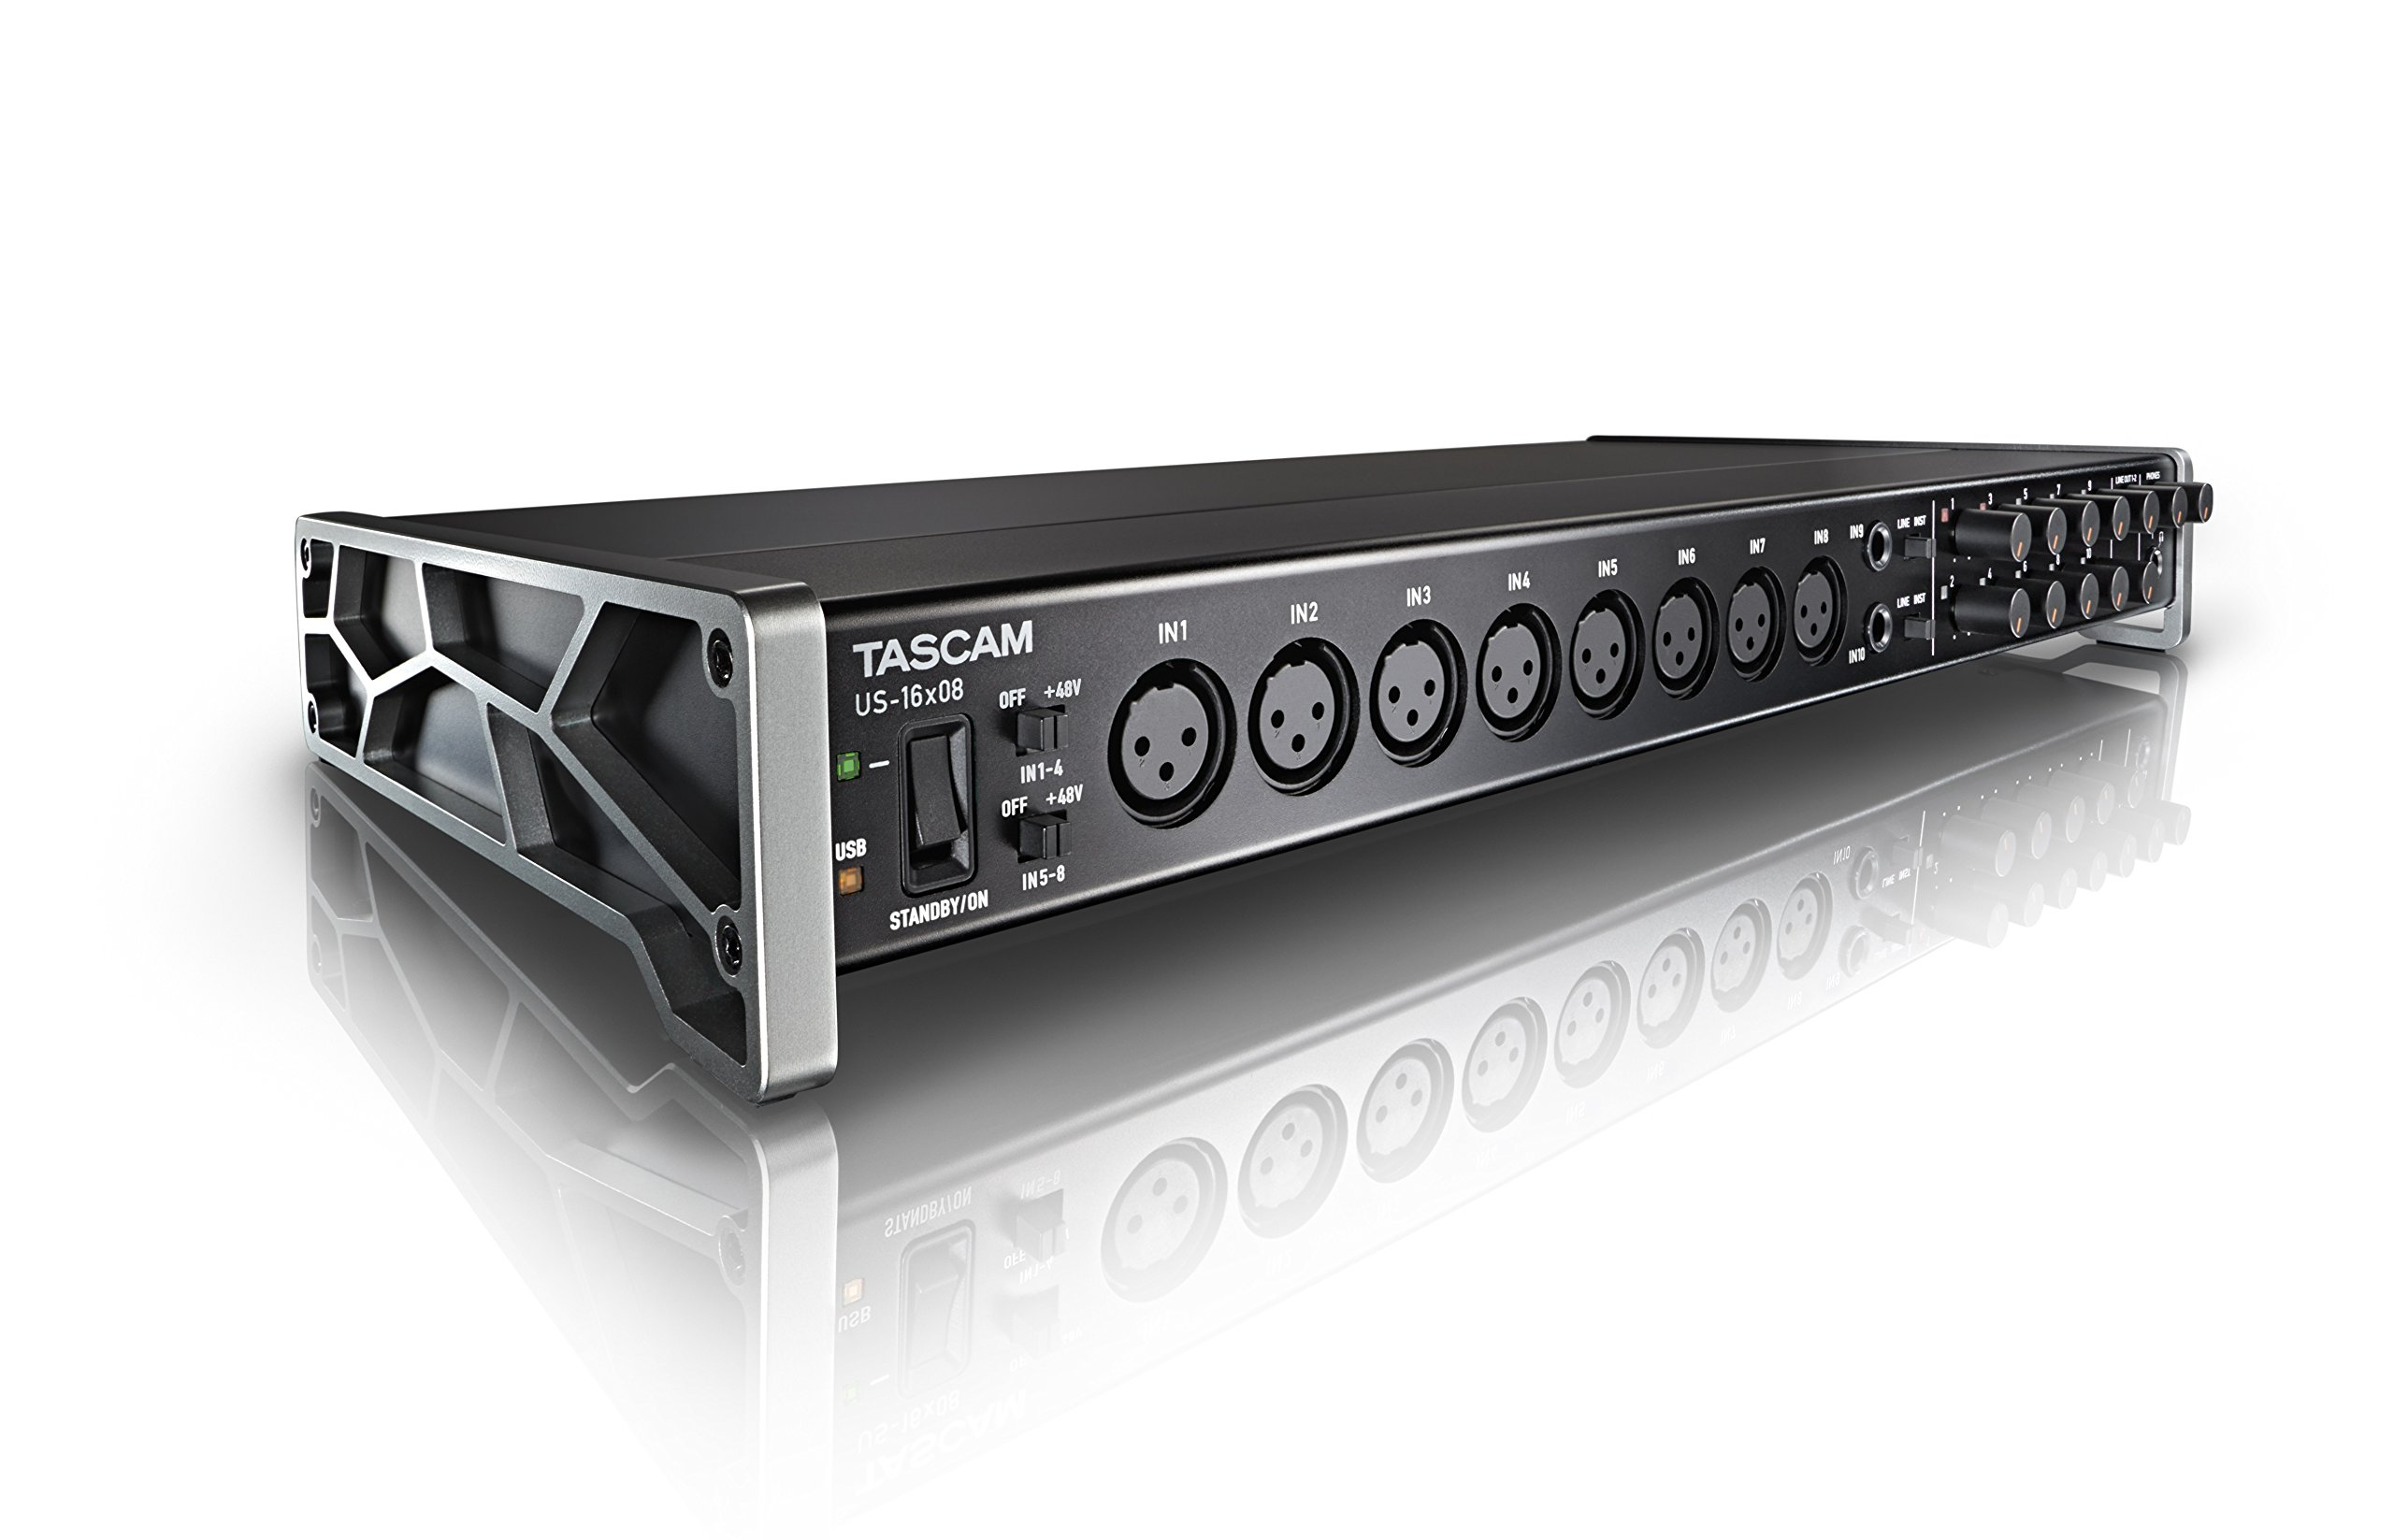 Tascam US-16X08 16x8 channel USB Audio Interface